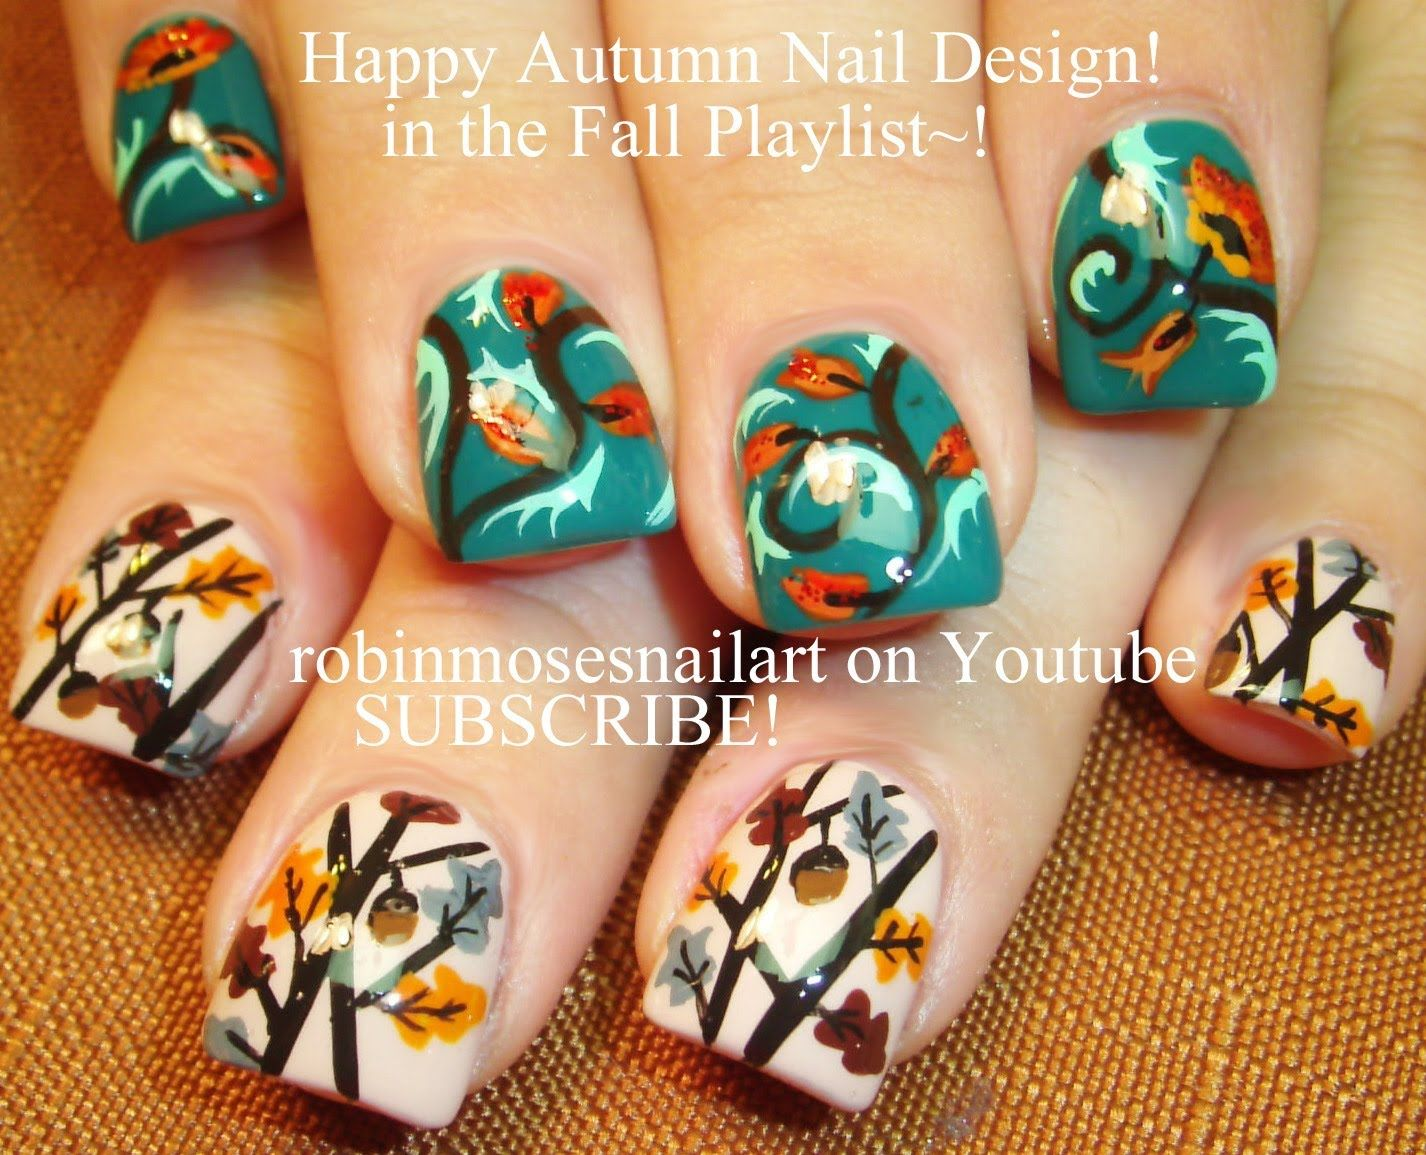 Cute fall nail art by robin moses robin moses nail art videos fall leaves fall nail art fall nails easy fall leaves fall designs autumn nails autumn nail art diy fall nail art designs tutorial robin moses solutioingenieria